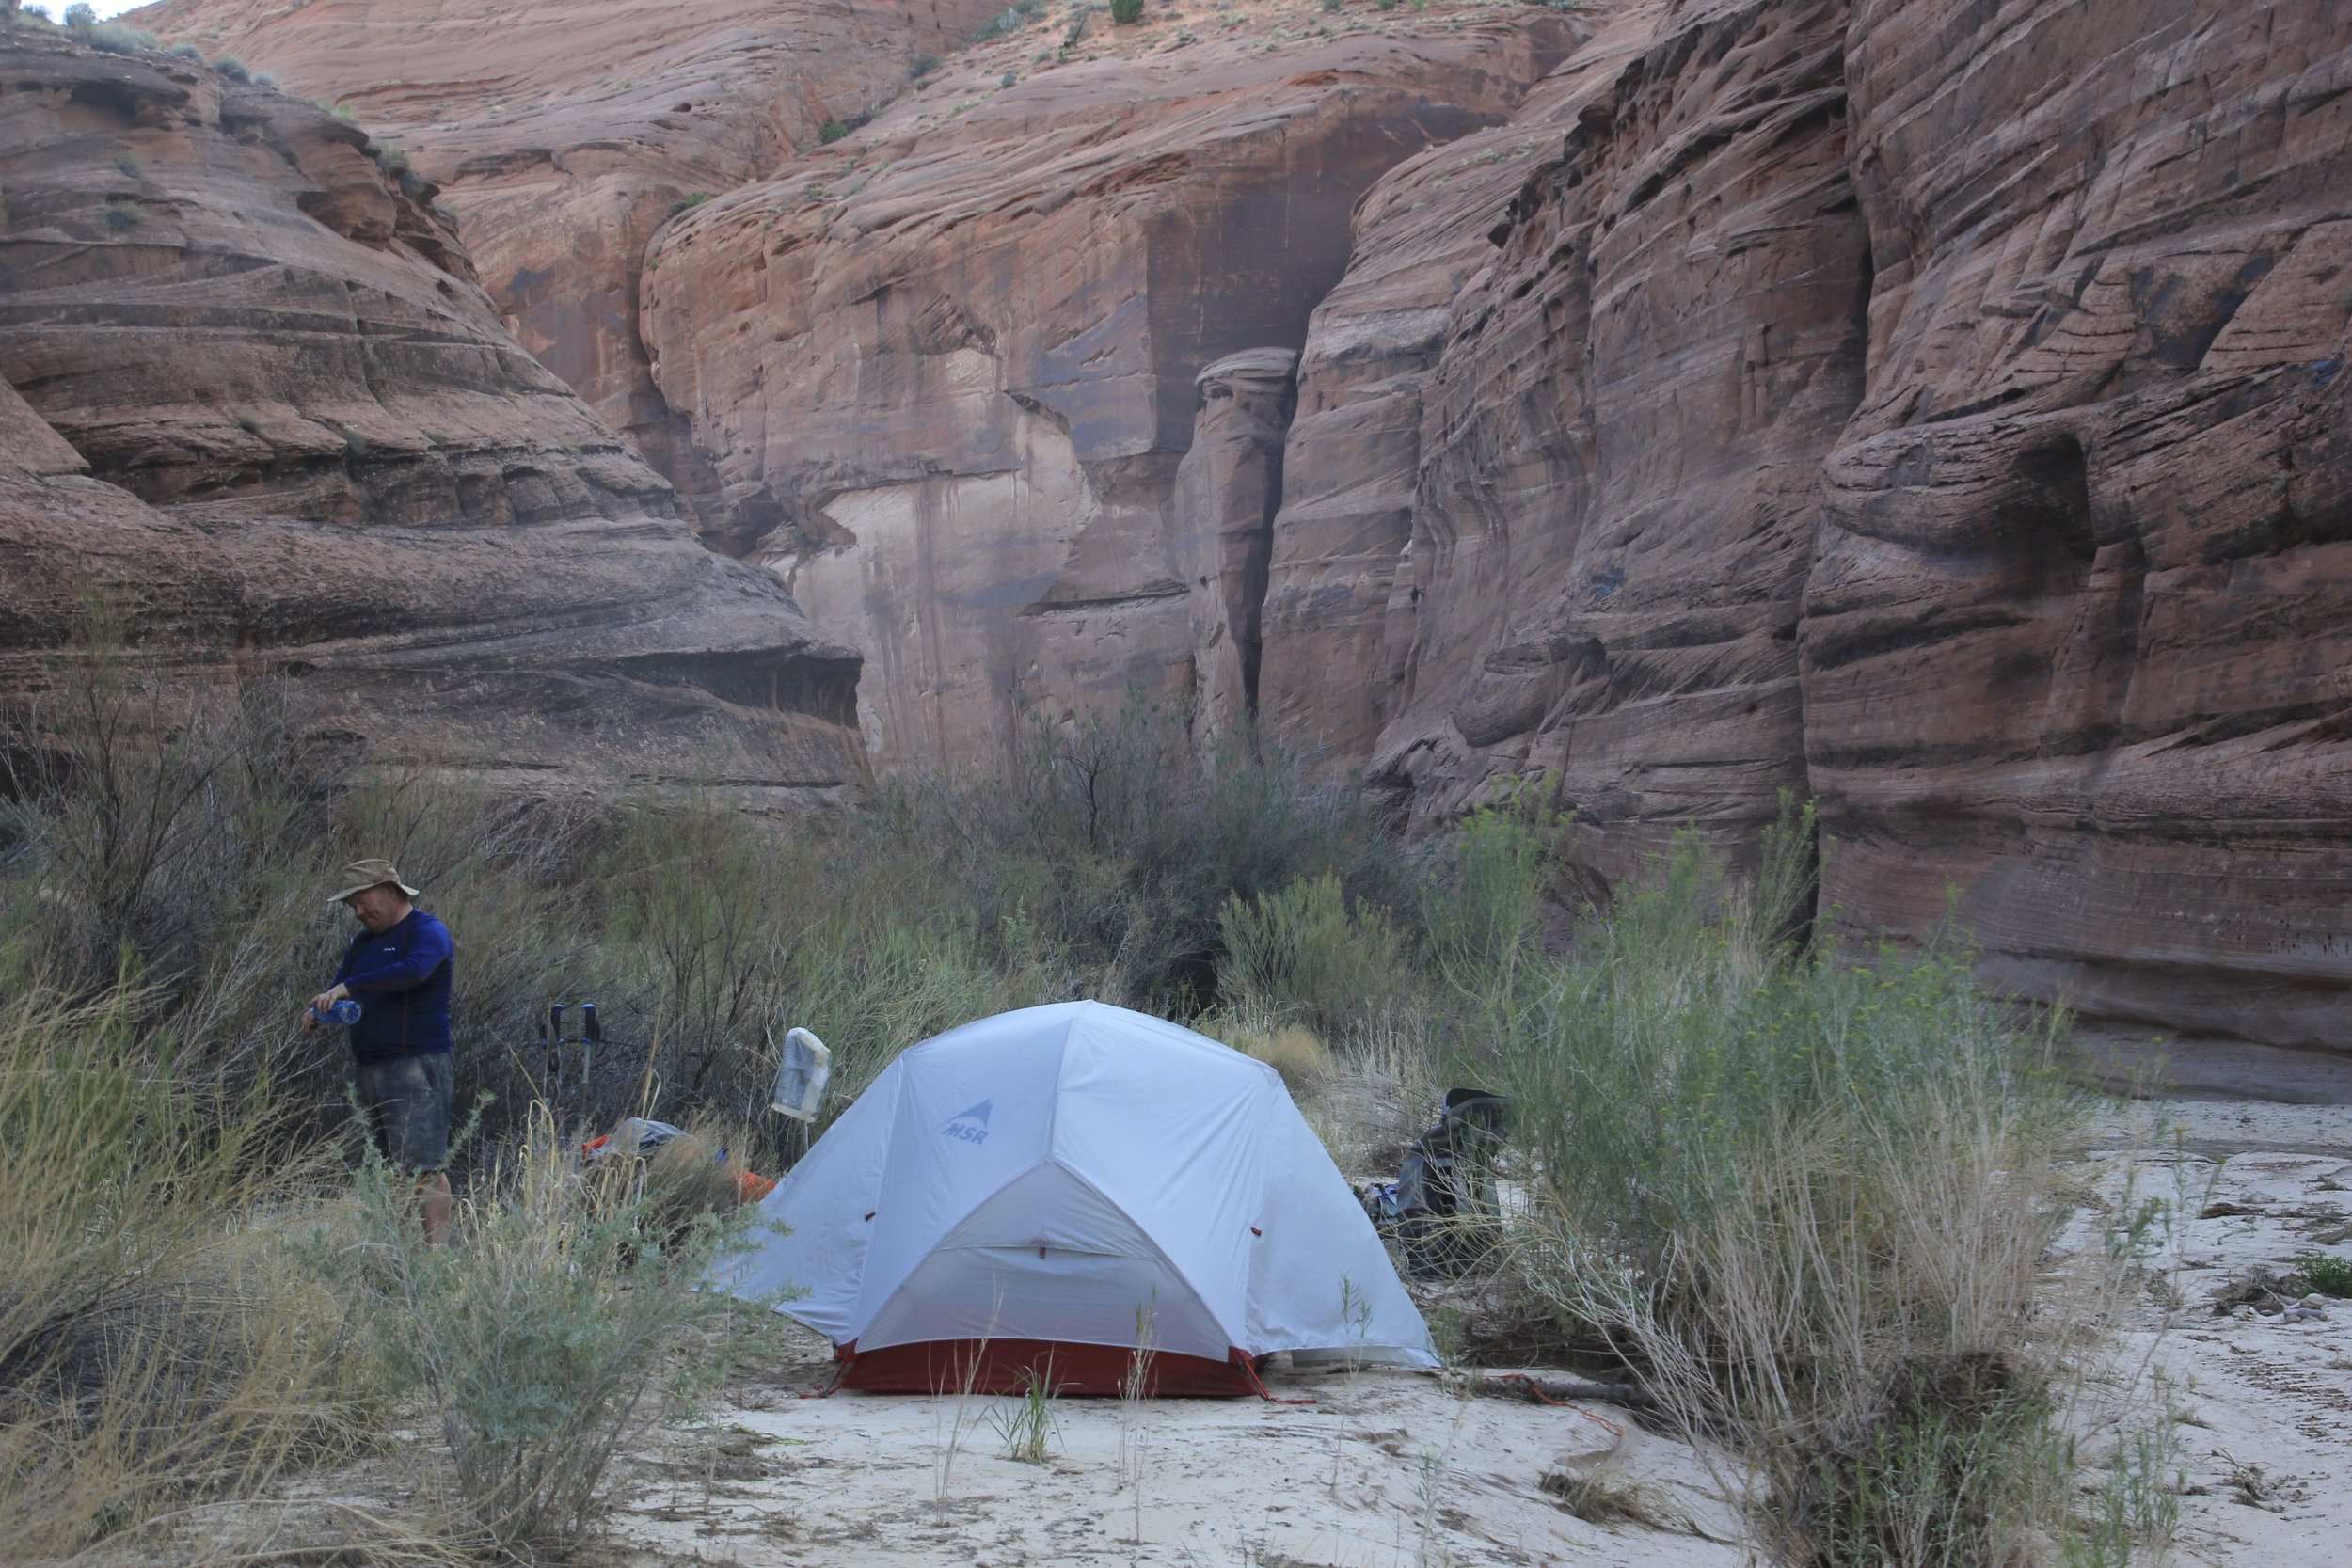 Our campsite on the banks of the Paria River.